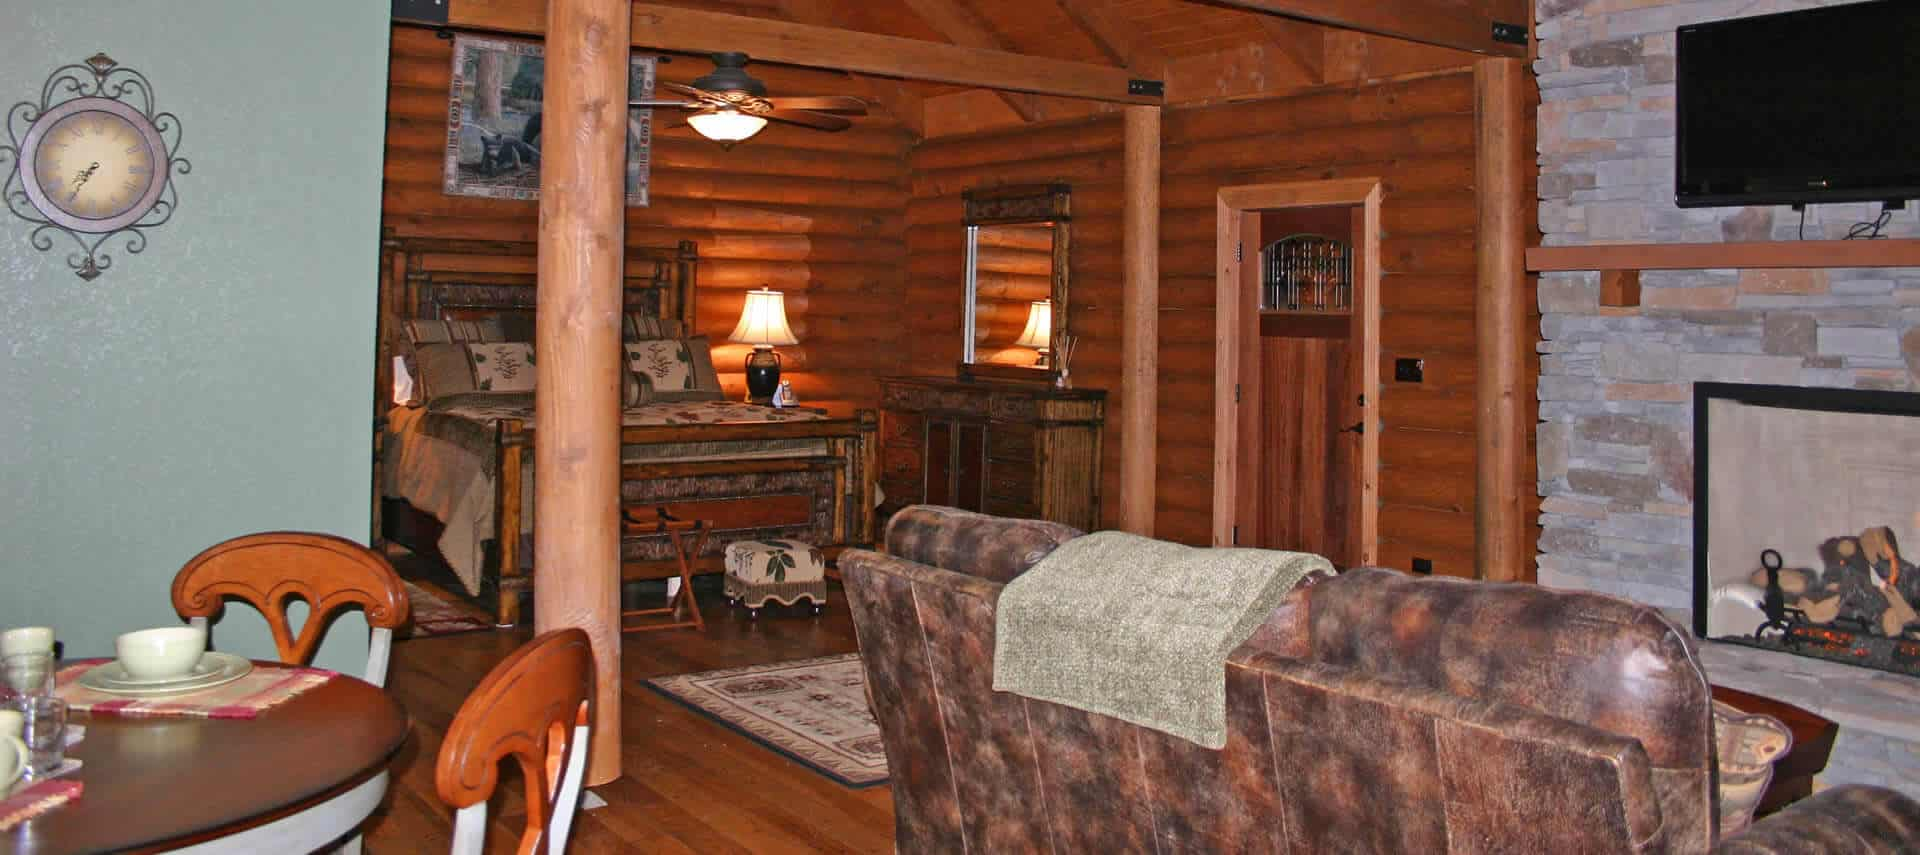 Large suite with wooden bed, log-cabin walls, a stone fireplace, leather sofa and table and chairs.